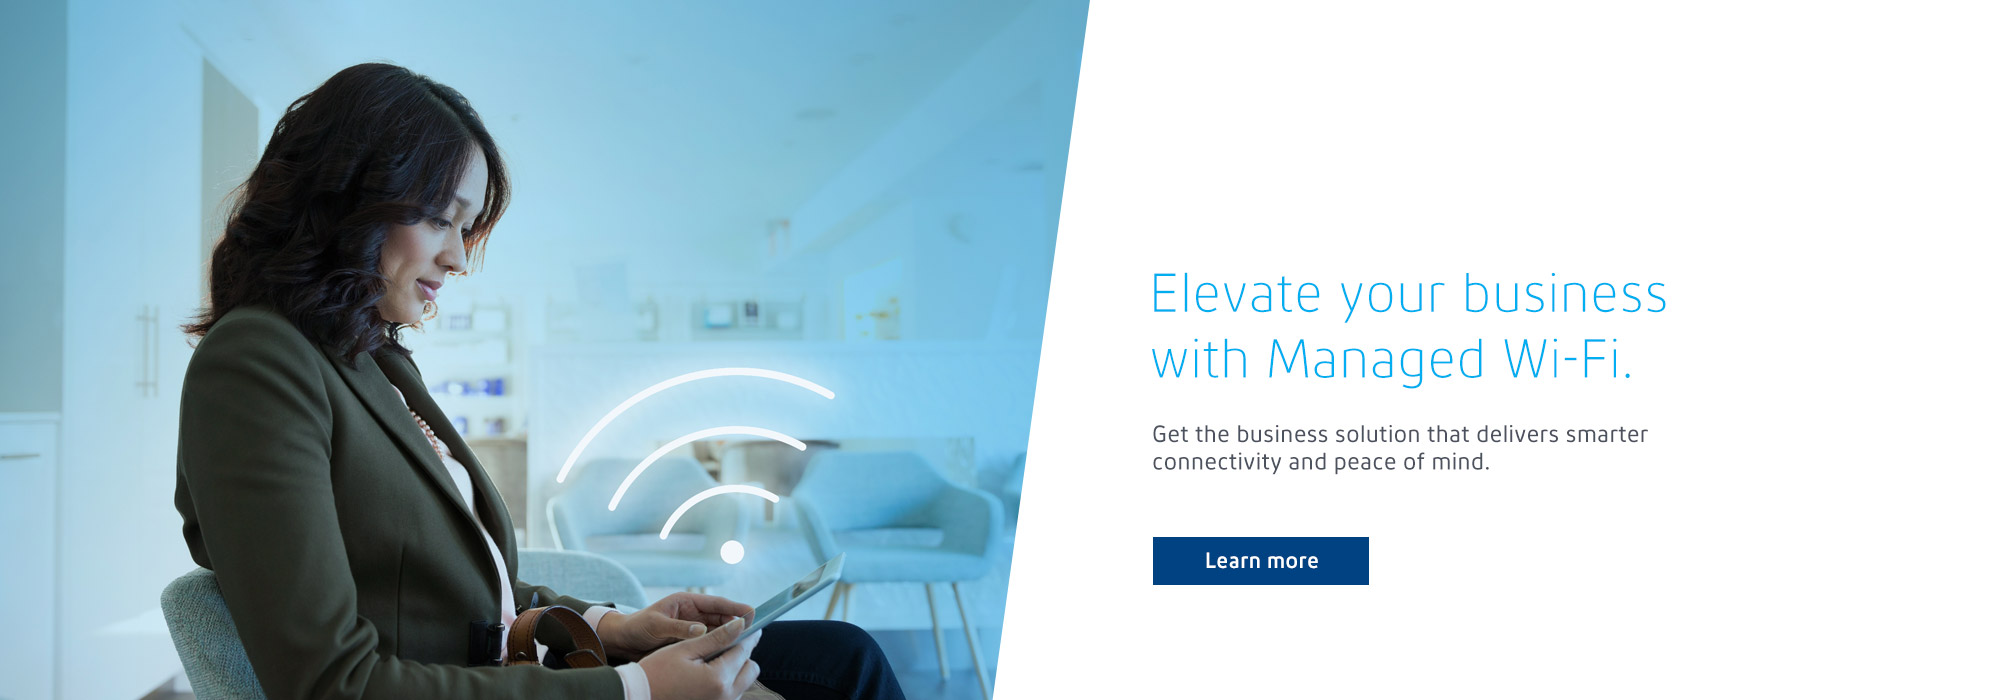 Elevate your business with managed wi-fi. Get the business solution that delivers smarter connectivity and peace of mind